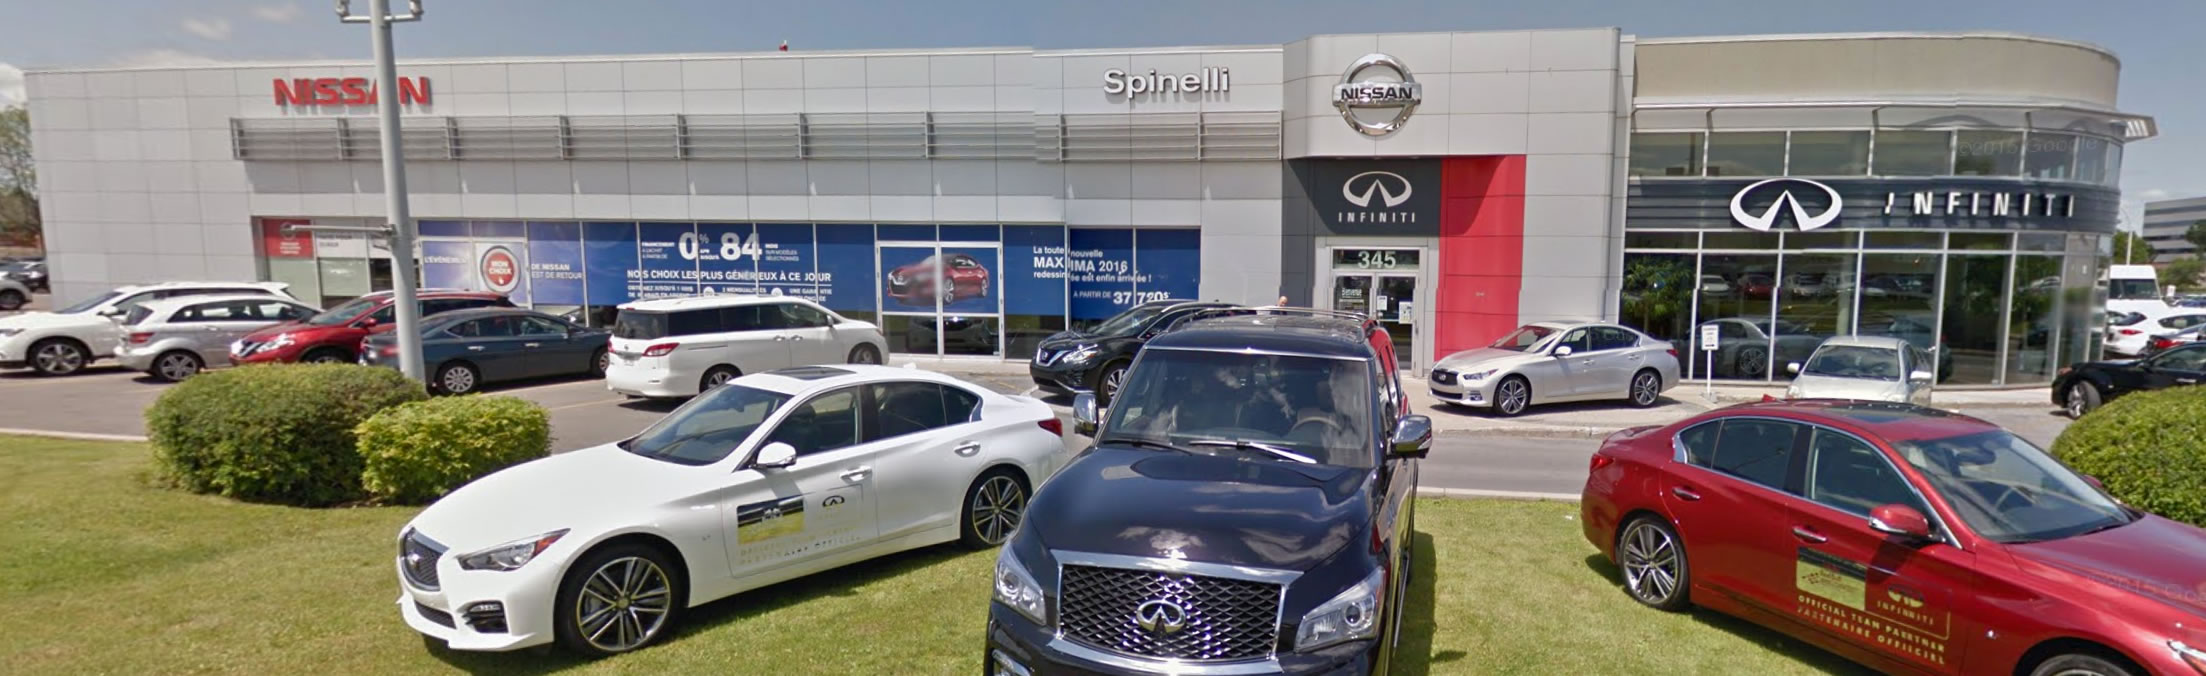 Spinelli Nissan: The Most Popular Nissan Dealer in Montreal